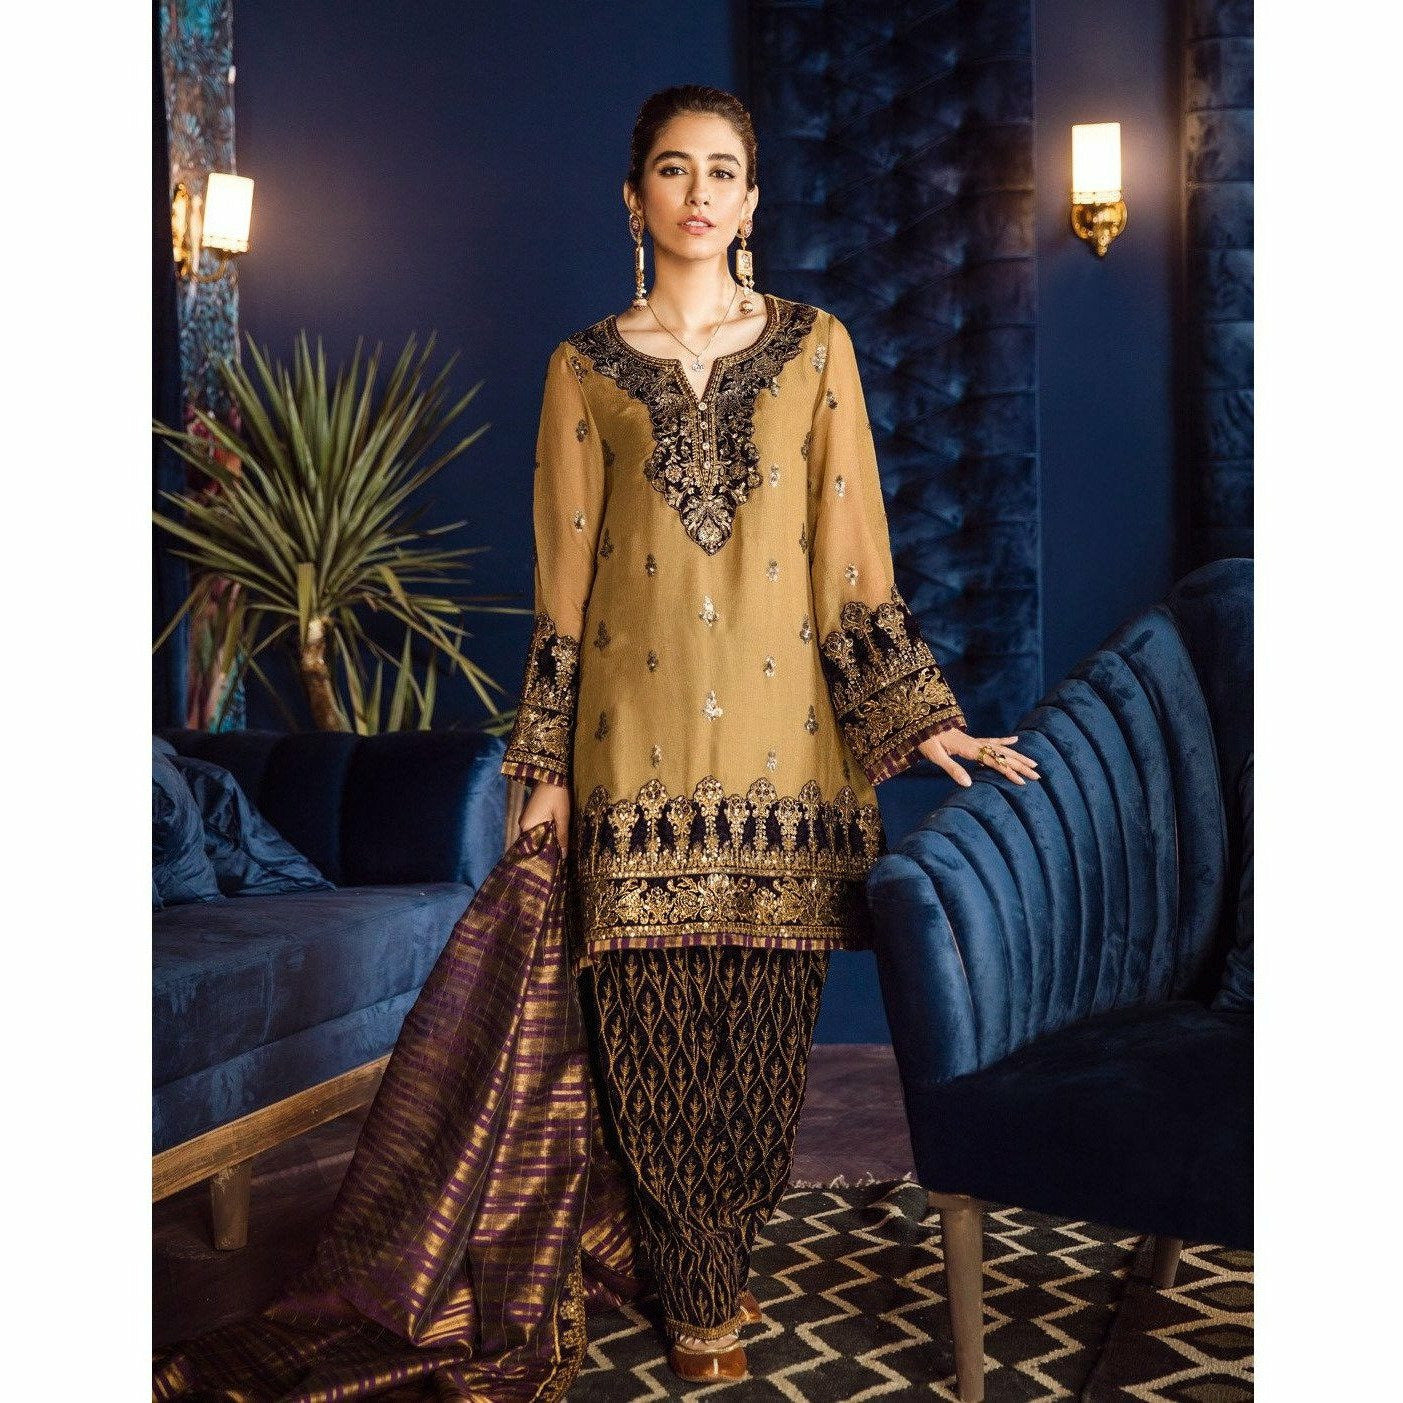 Iznik | Festive Velvet 19 | Majestic Copper 02 - House of Faiza